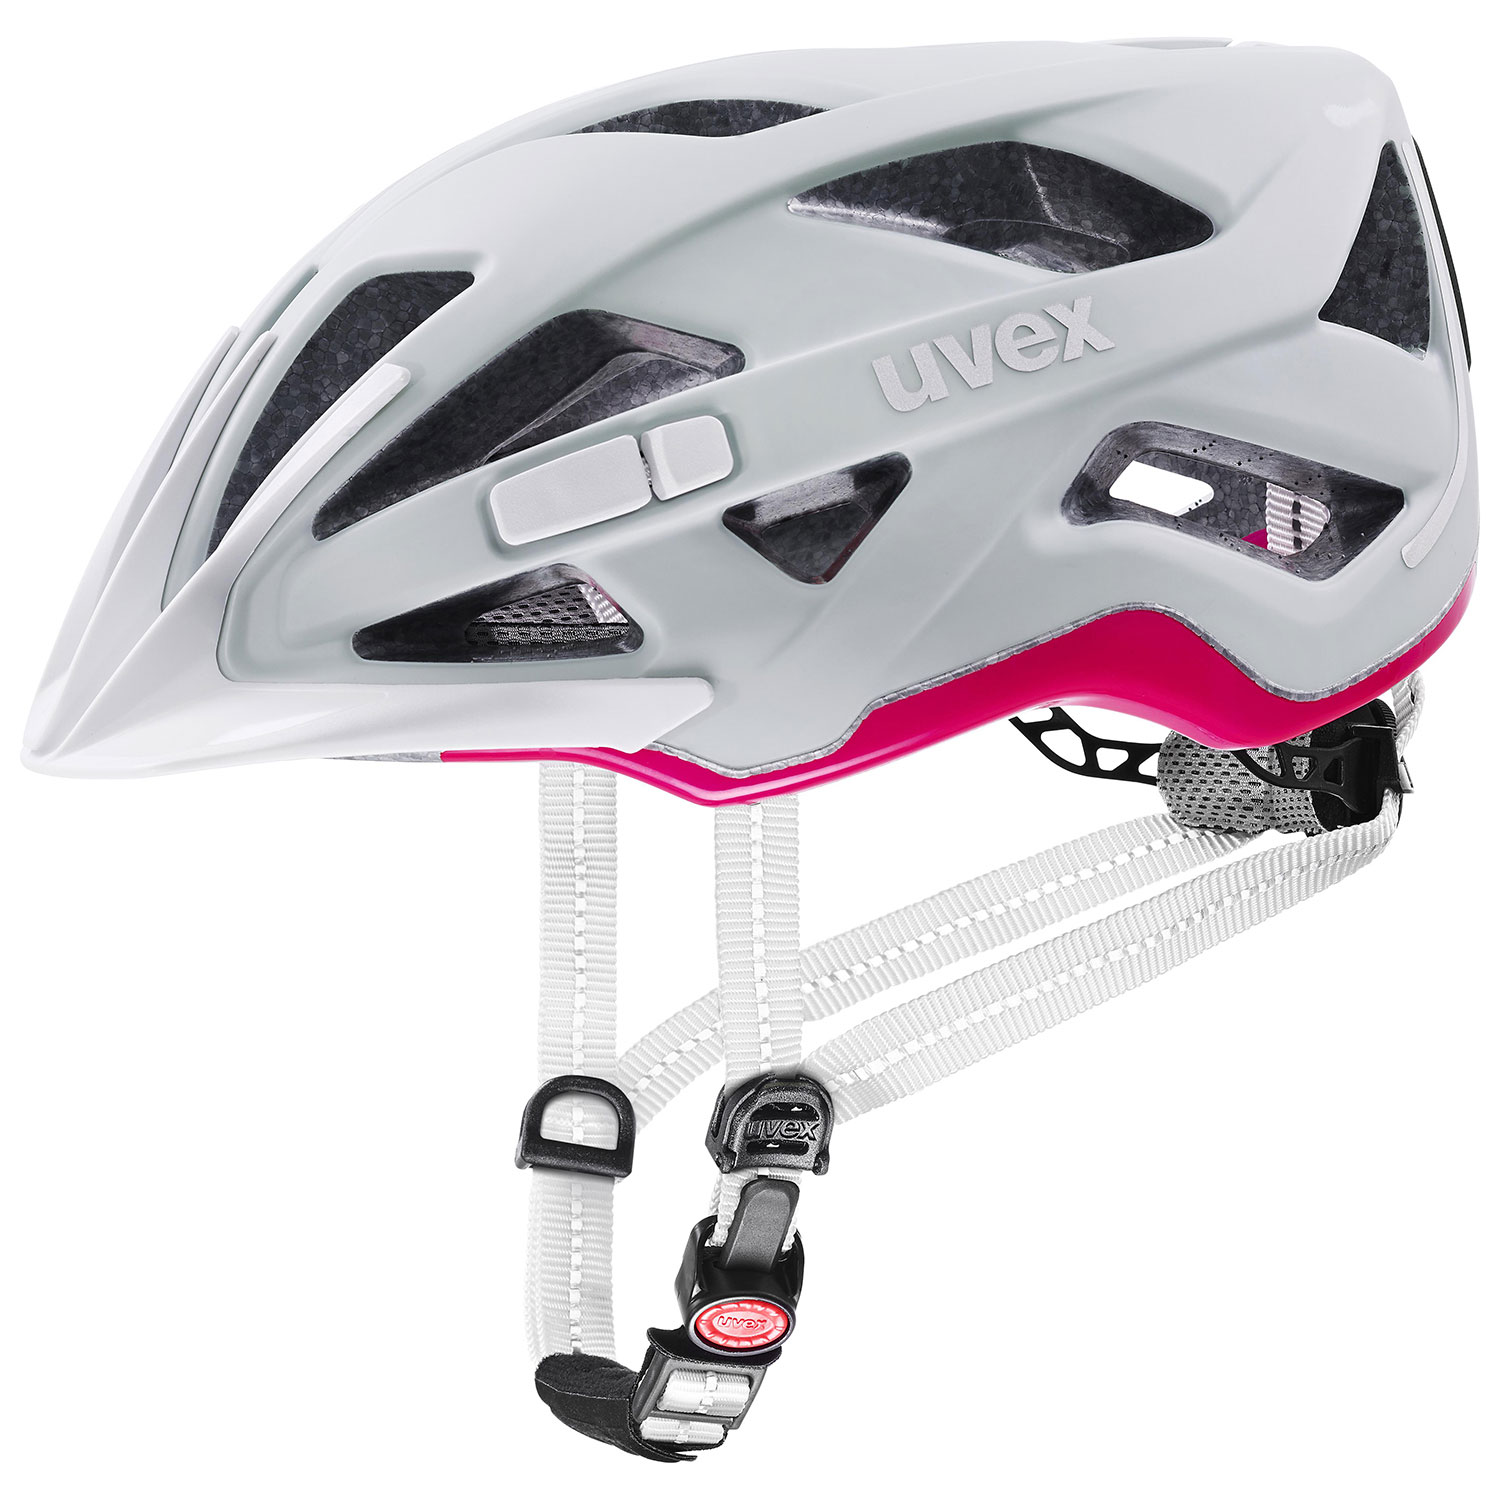 2021 UVEX HELMA CITY ACTIVE, PAPYRUS - NEON PINK MAT 56-60